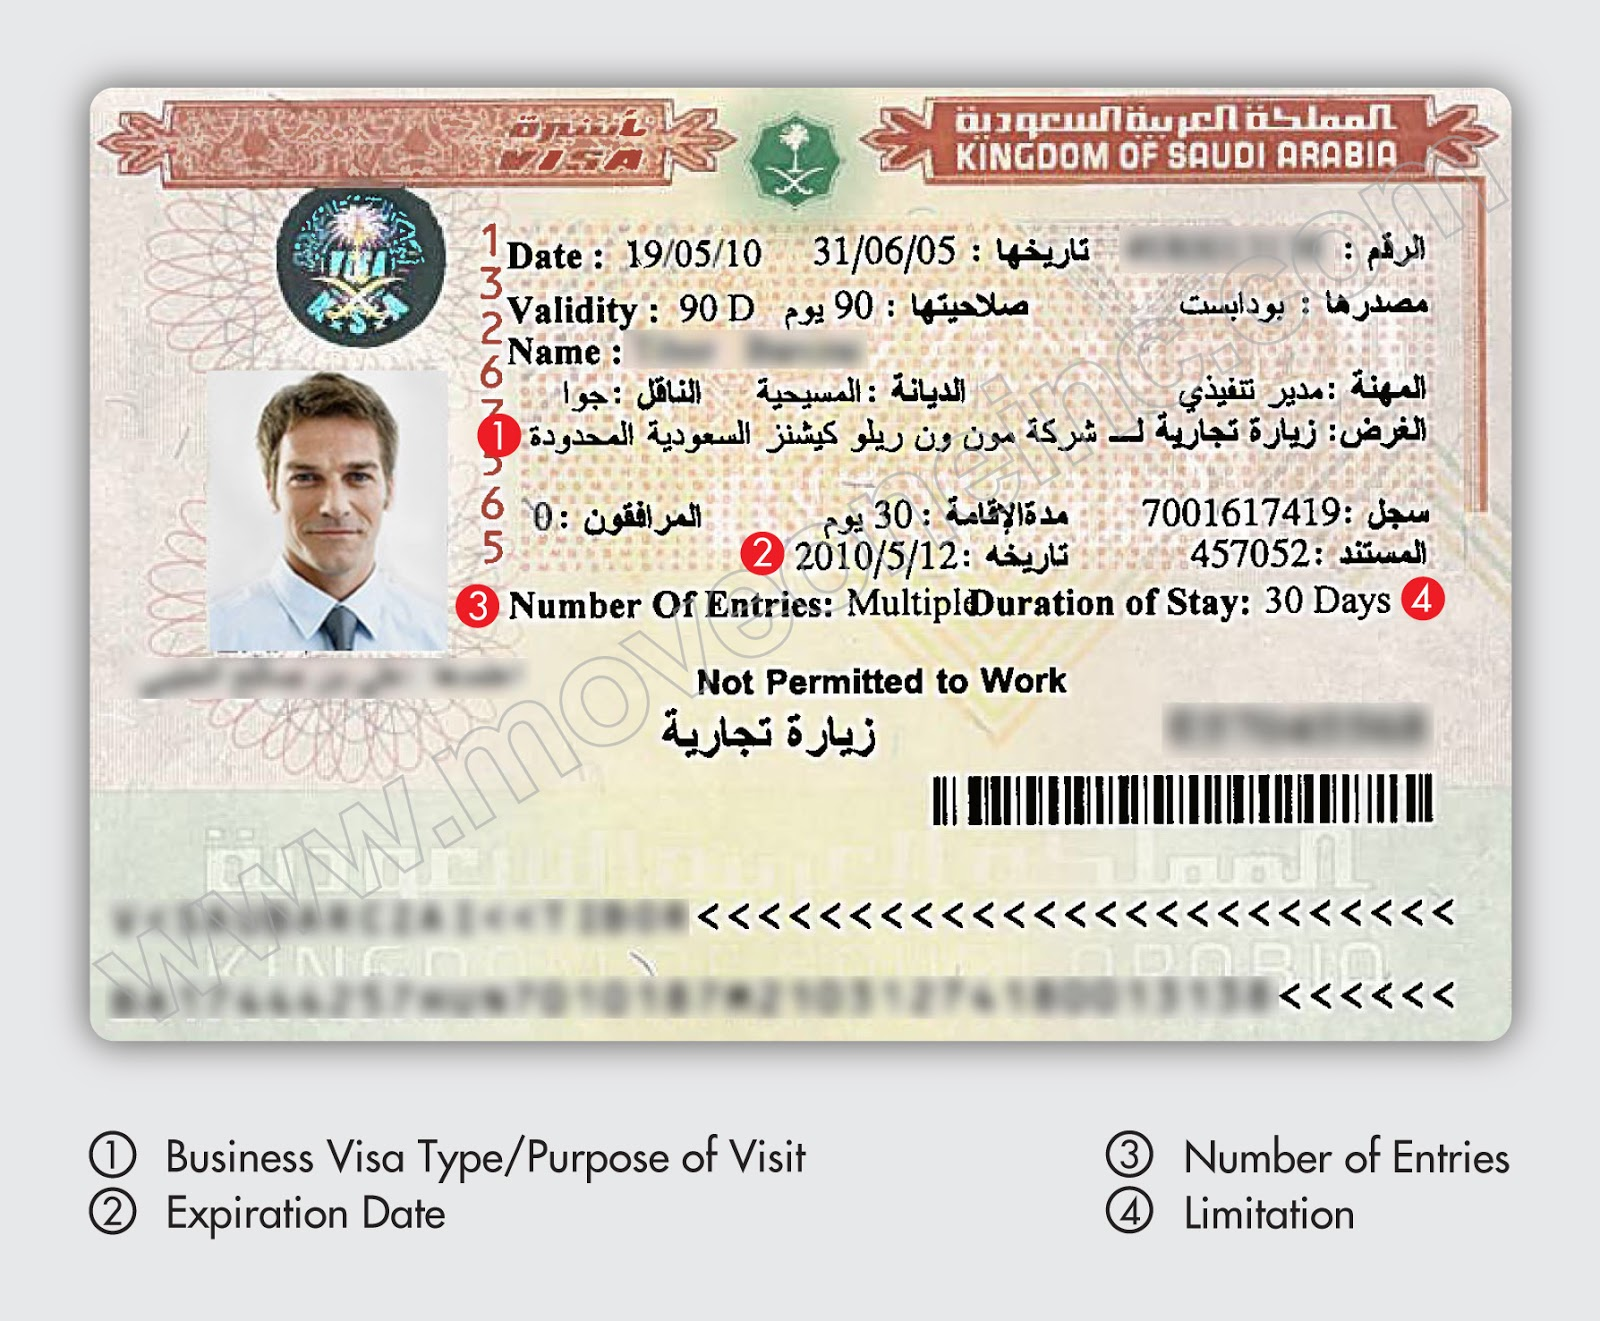 ADDITIONAL DOCUMENTS REQUIRED FOR SAUDI ARABIA VISA